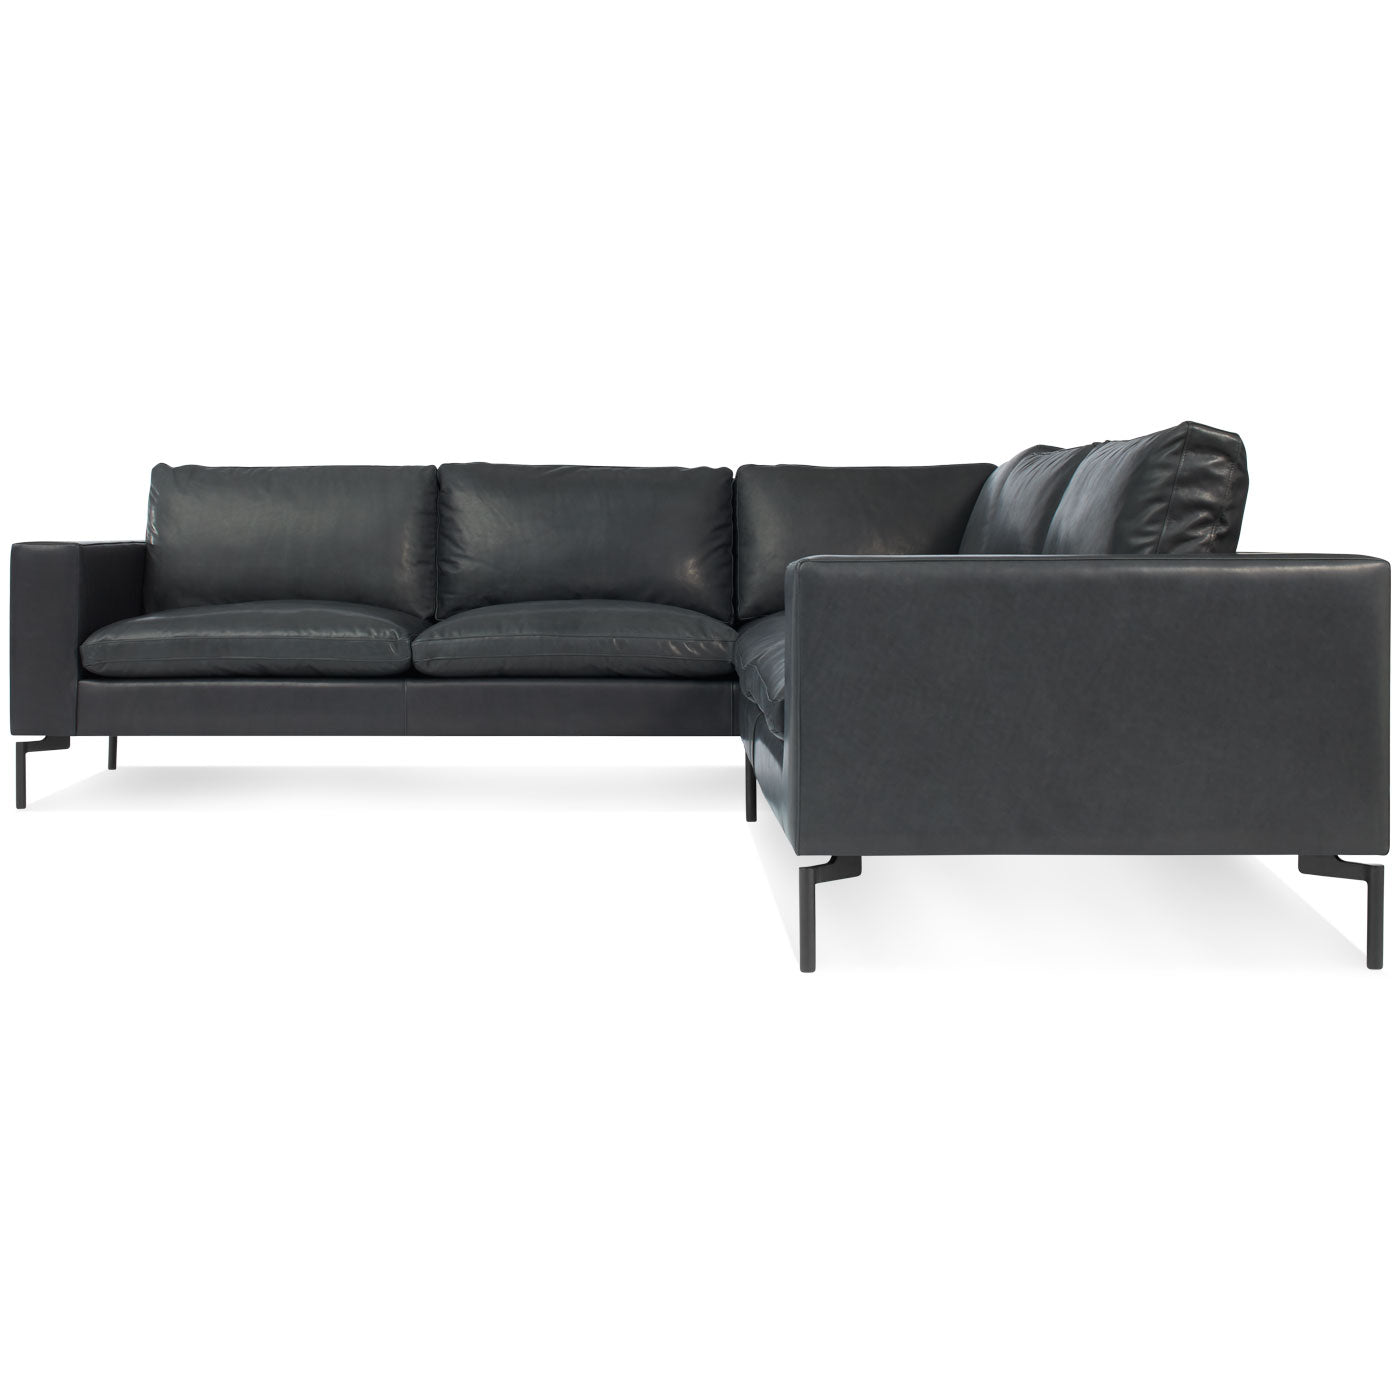 Blu Dot New Standard Right Leather Sectional Sofa - Small – Hutch ...